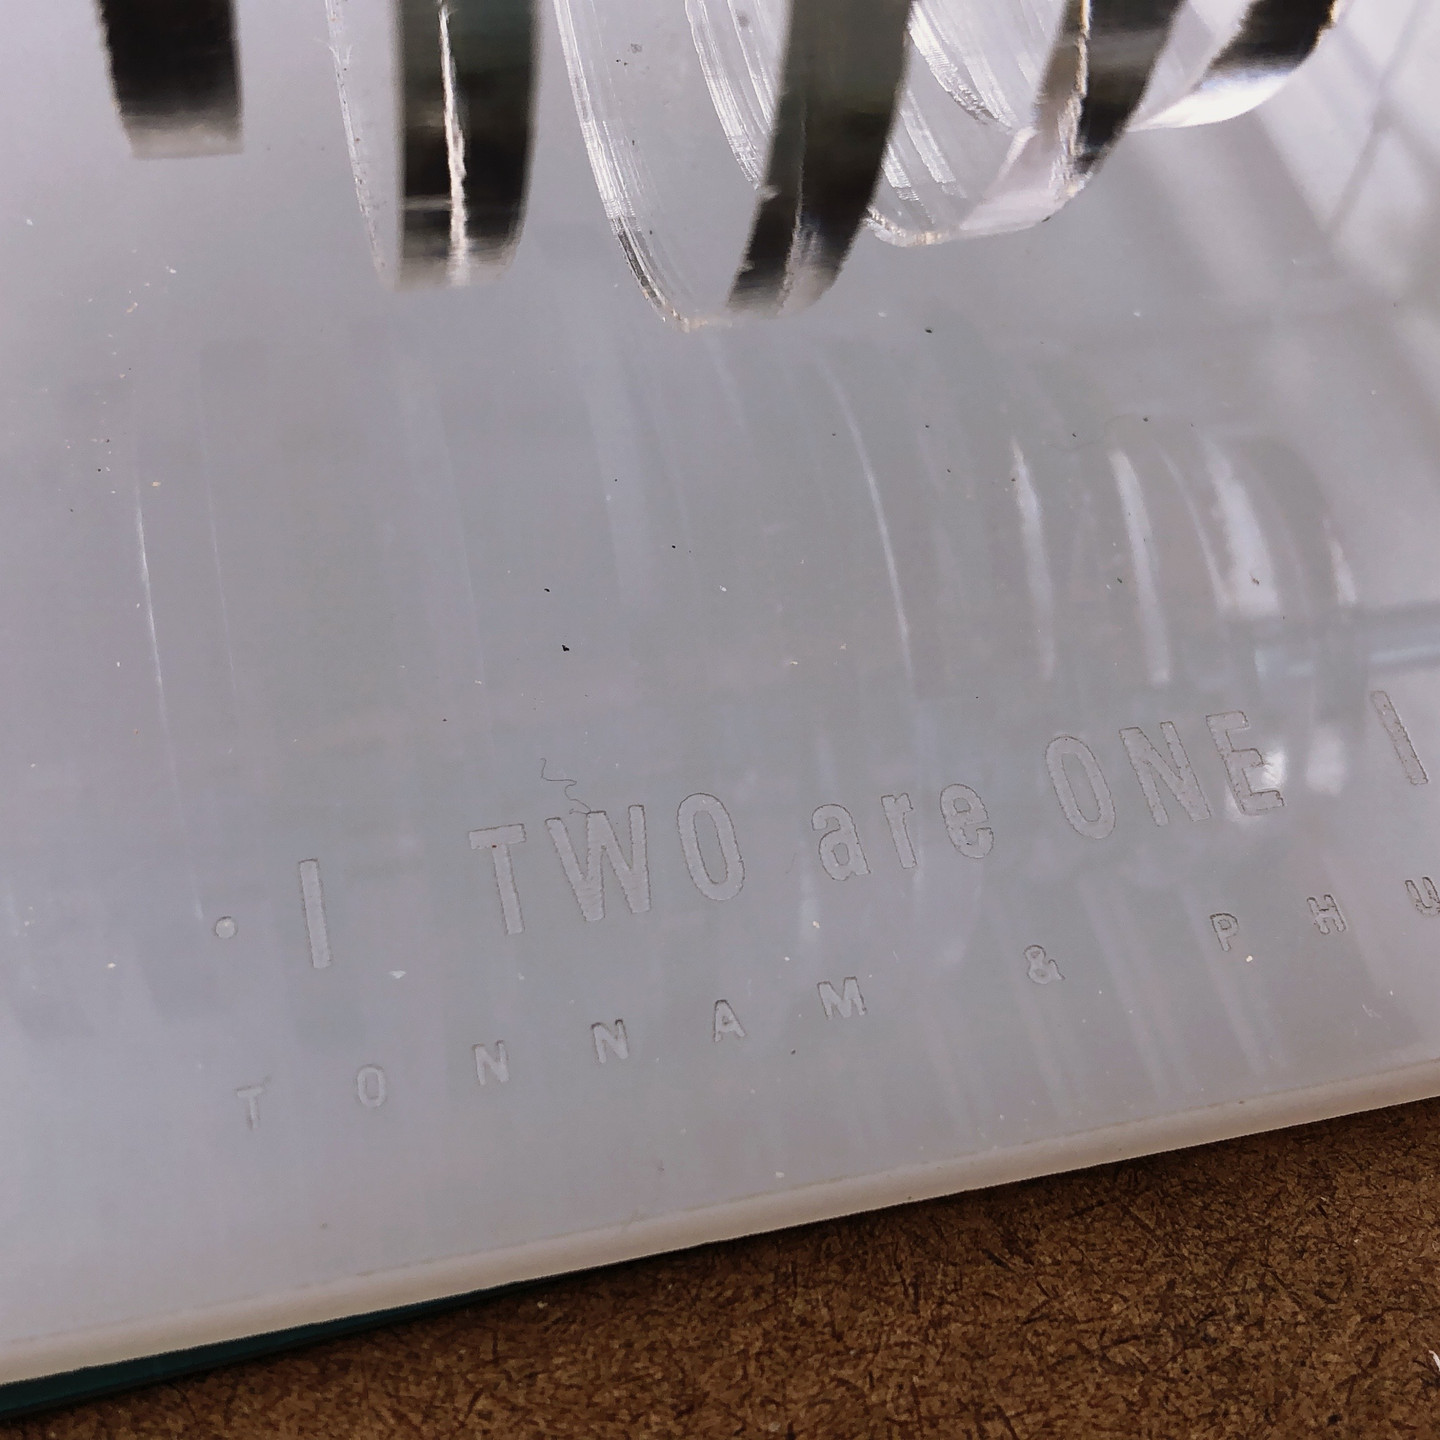 I also engrave some words on the base of the sculpture